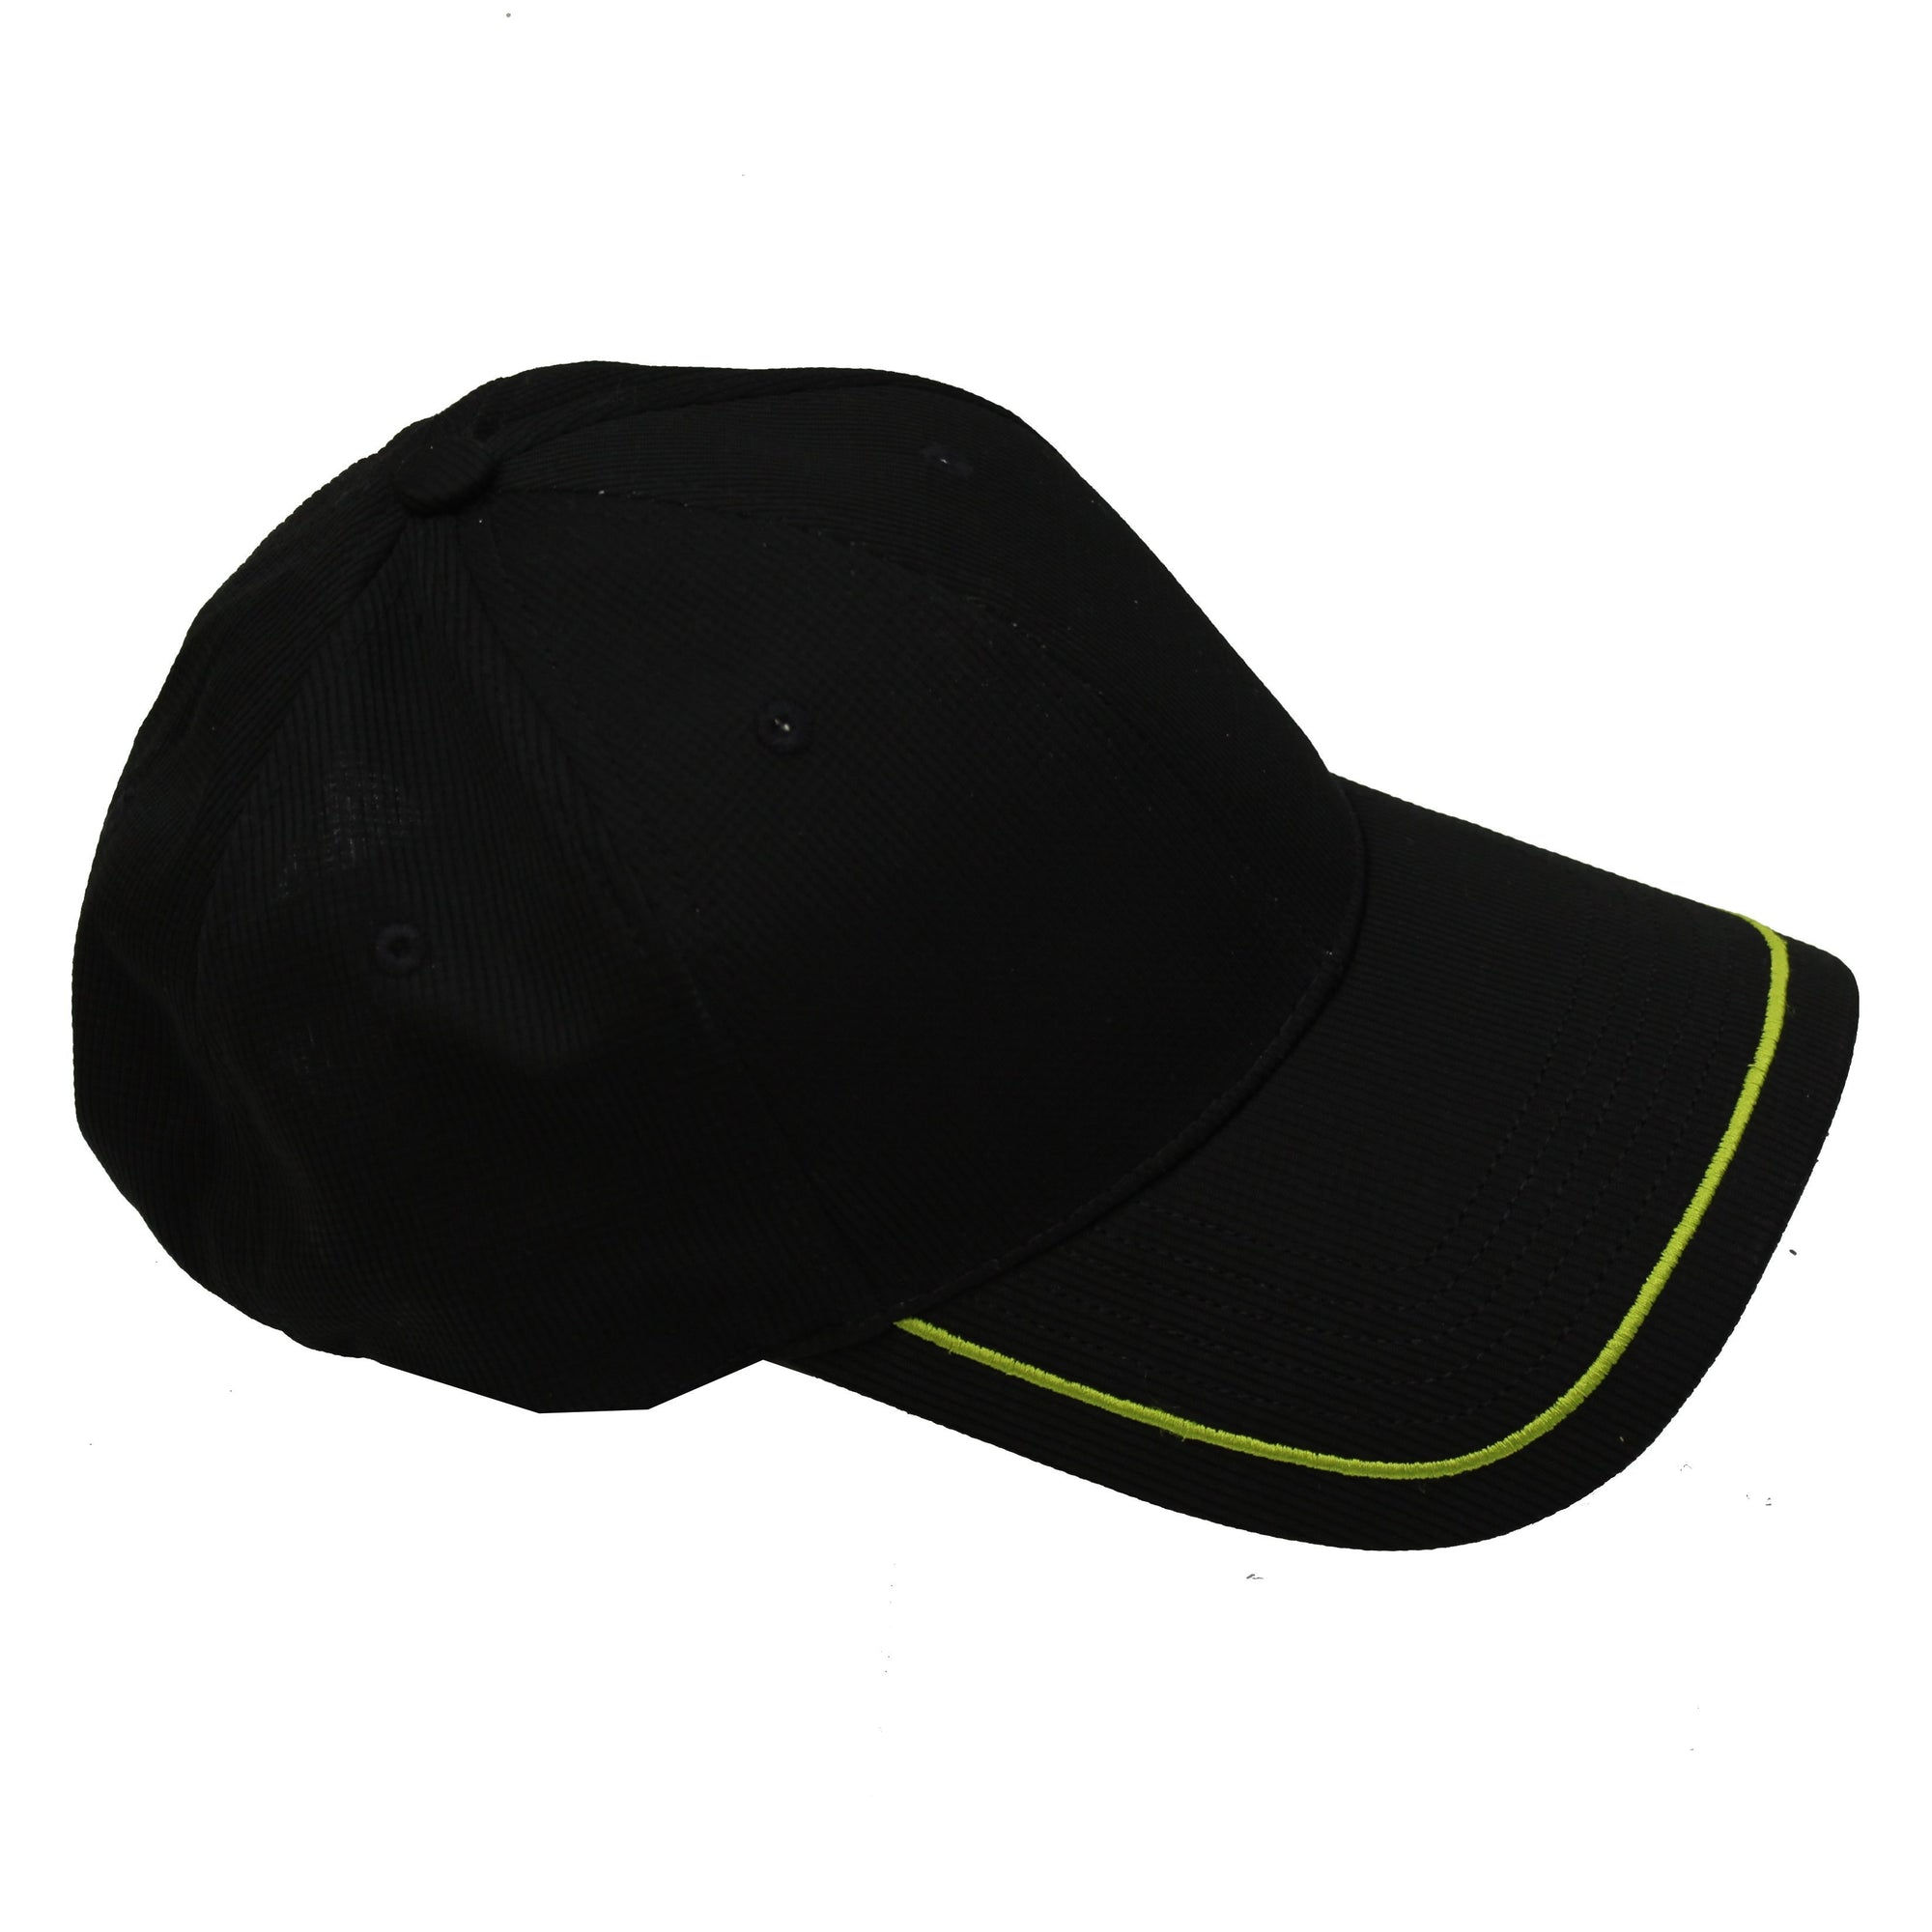 Druids Golf - Contrast Caps (Black/Lime)